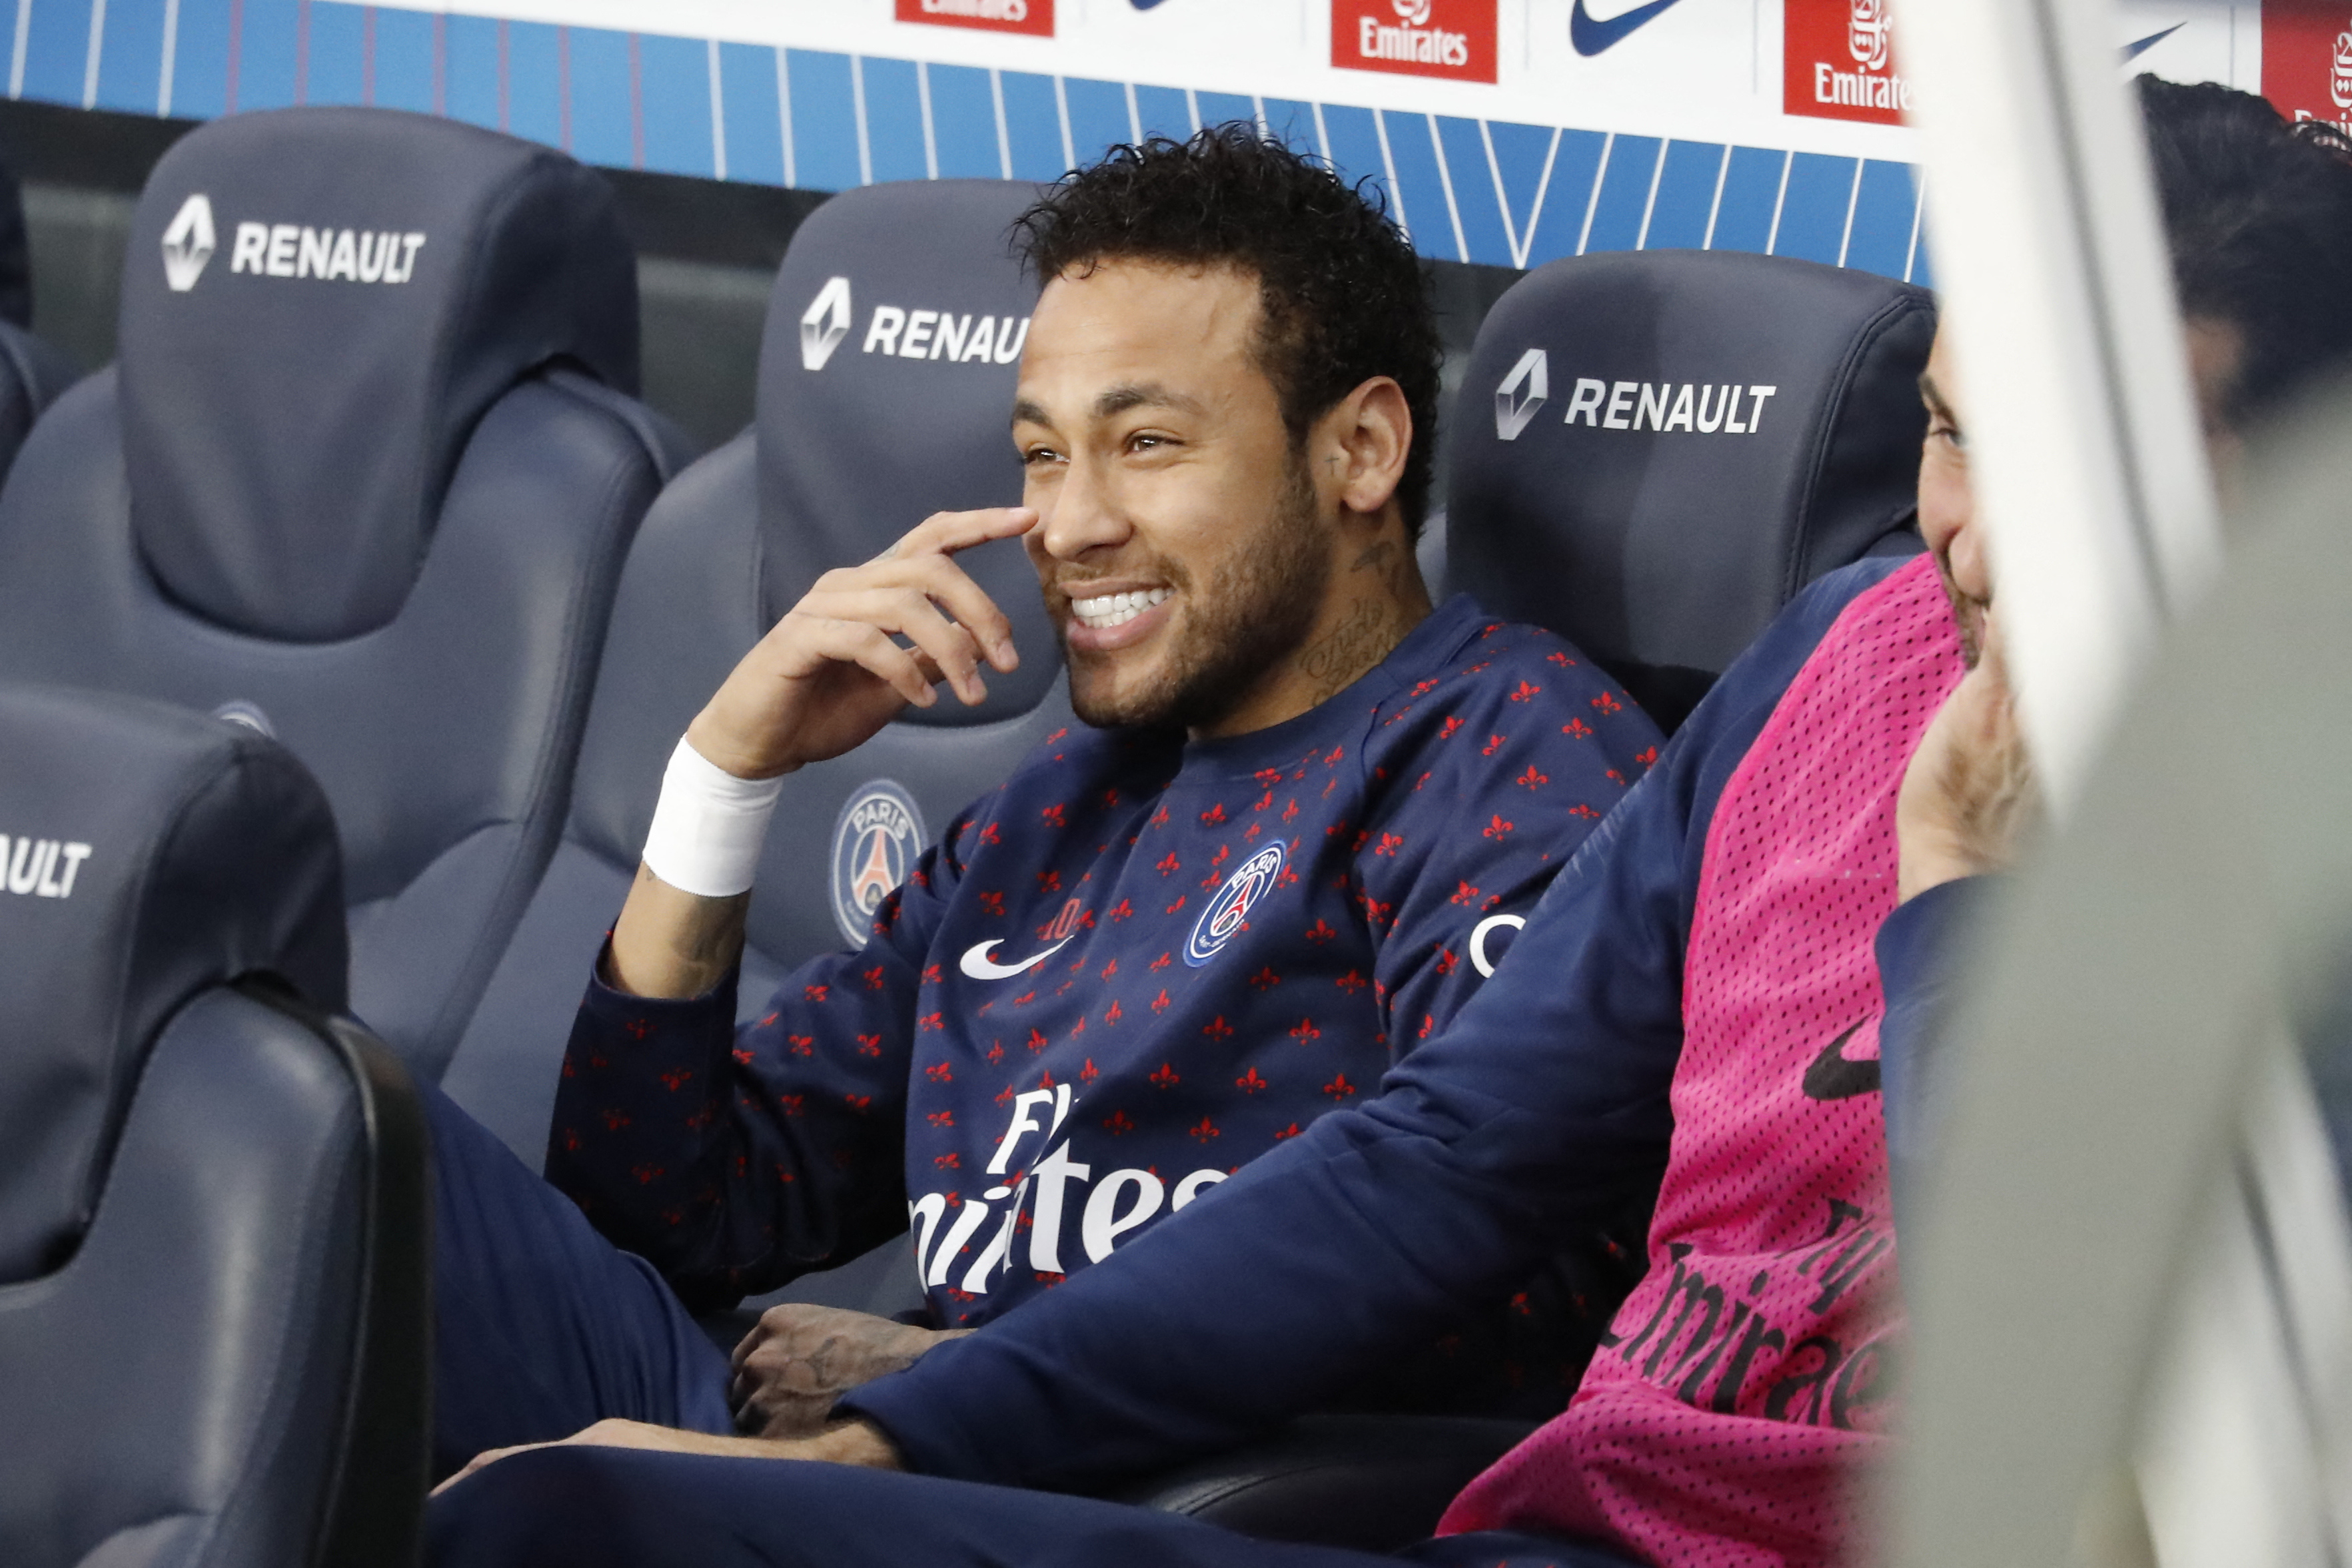 Neymar reacts to the news he's going back to Barcelona. Image: PA Images